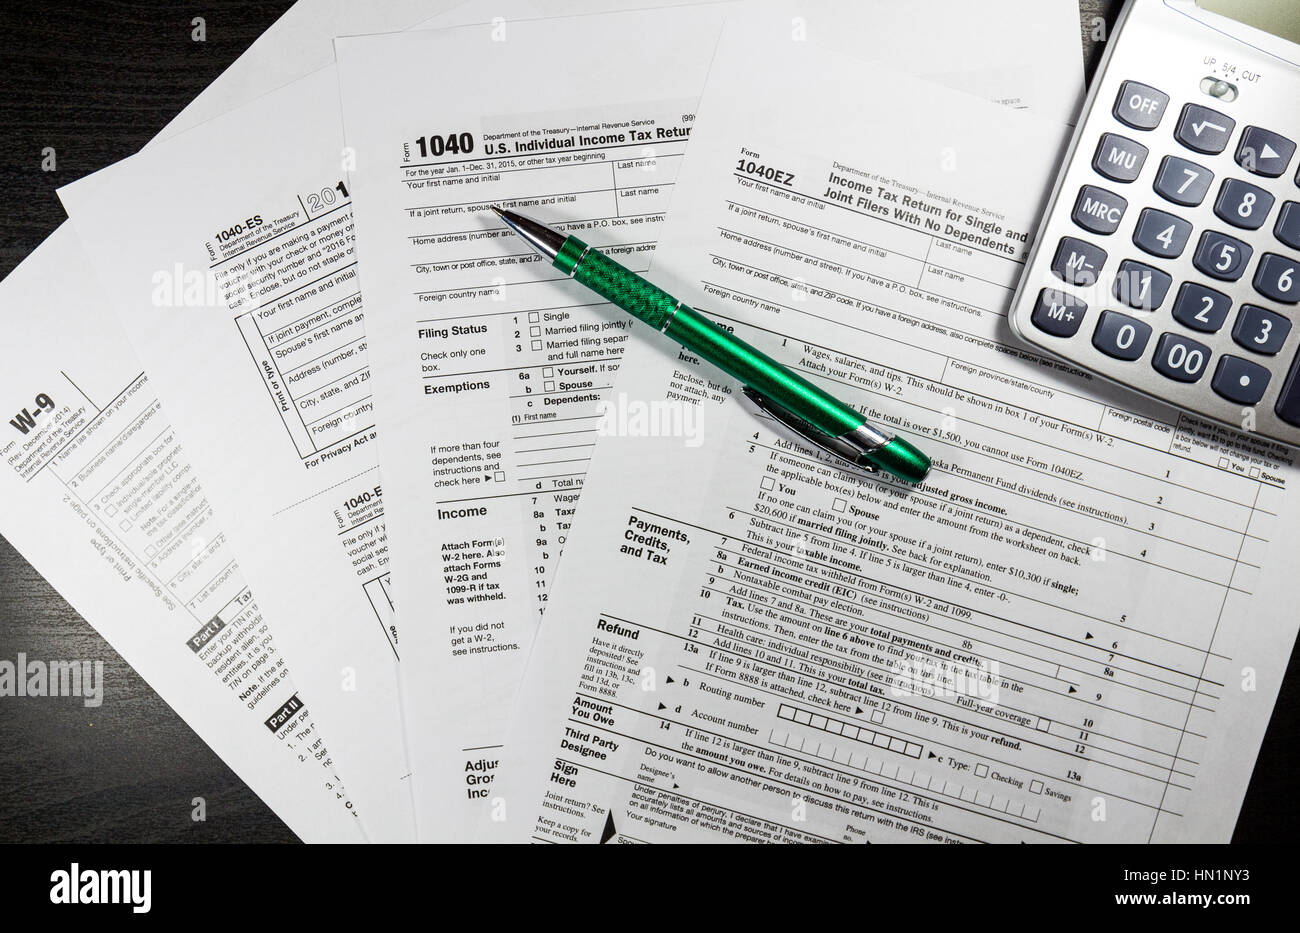 1040 tax return form with a pen stock photo royalty free image 1040 tax return form with a pen falaconquin